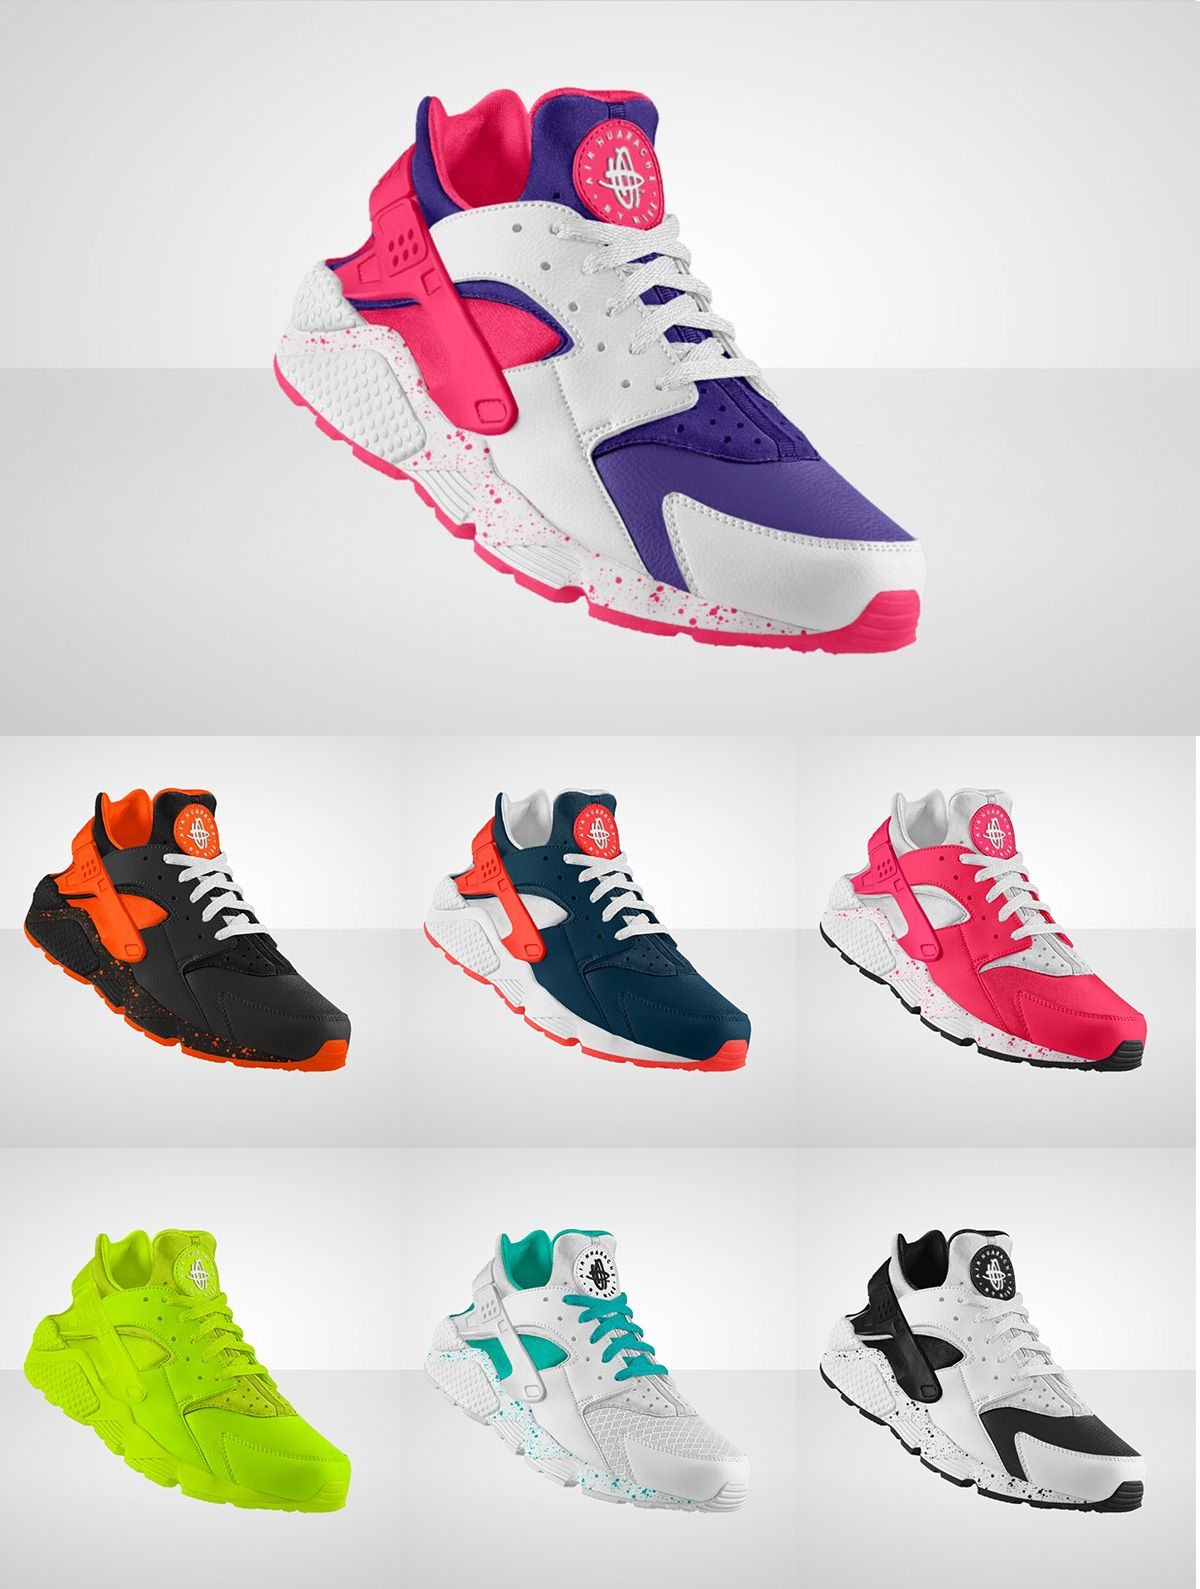 Nike Air Huarache Run iD | SNEAKERHĖAD ❤ | Pinterest | Shoes ...